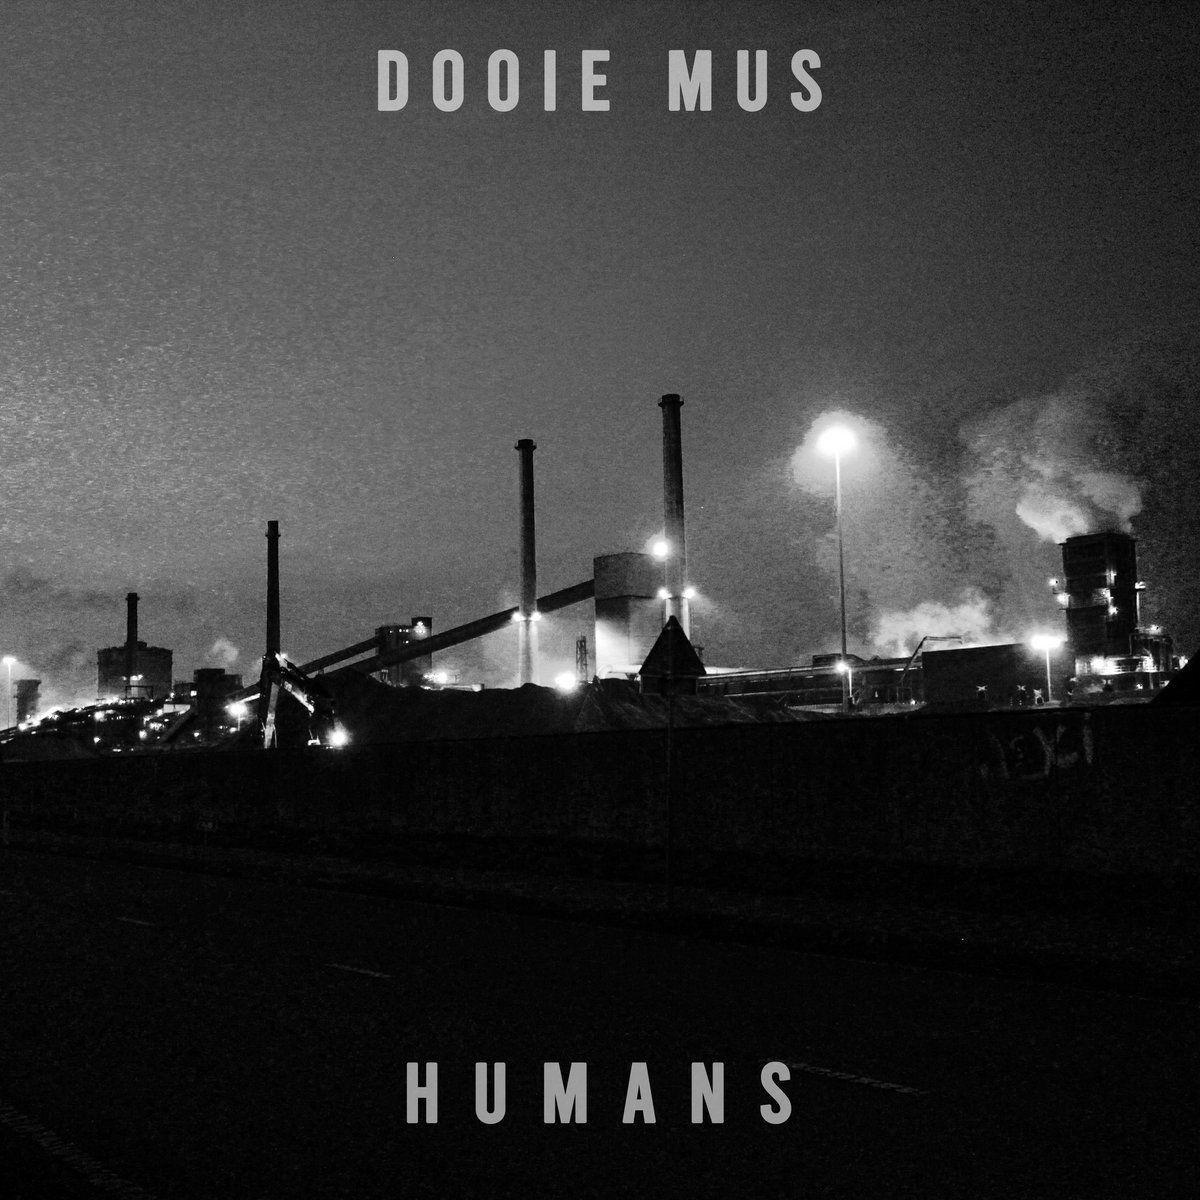 Digital release for first Dooie Mus track: 'Humans'